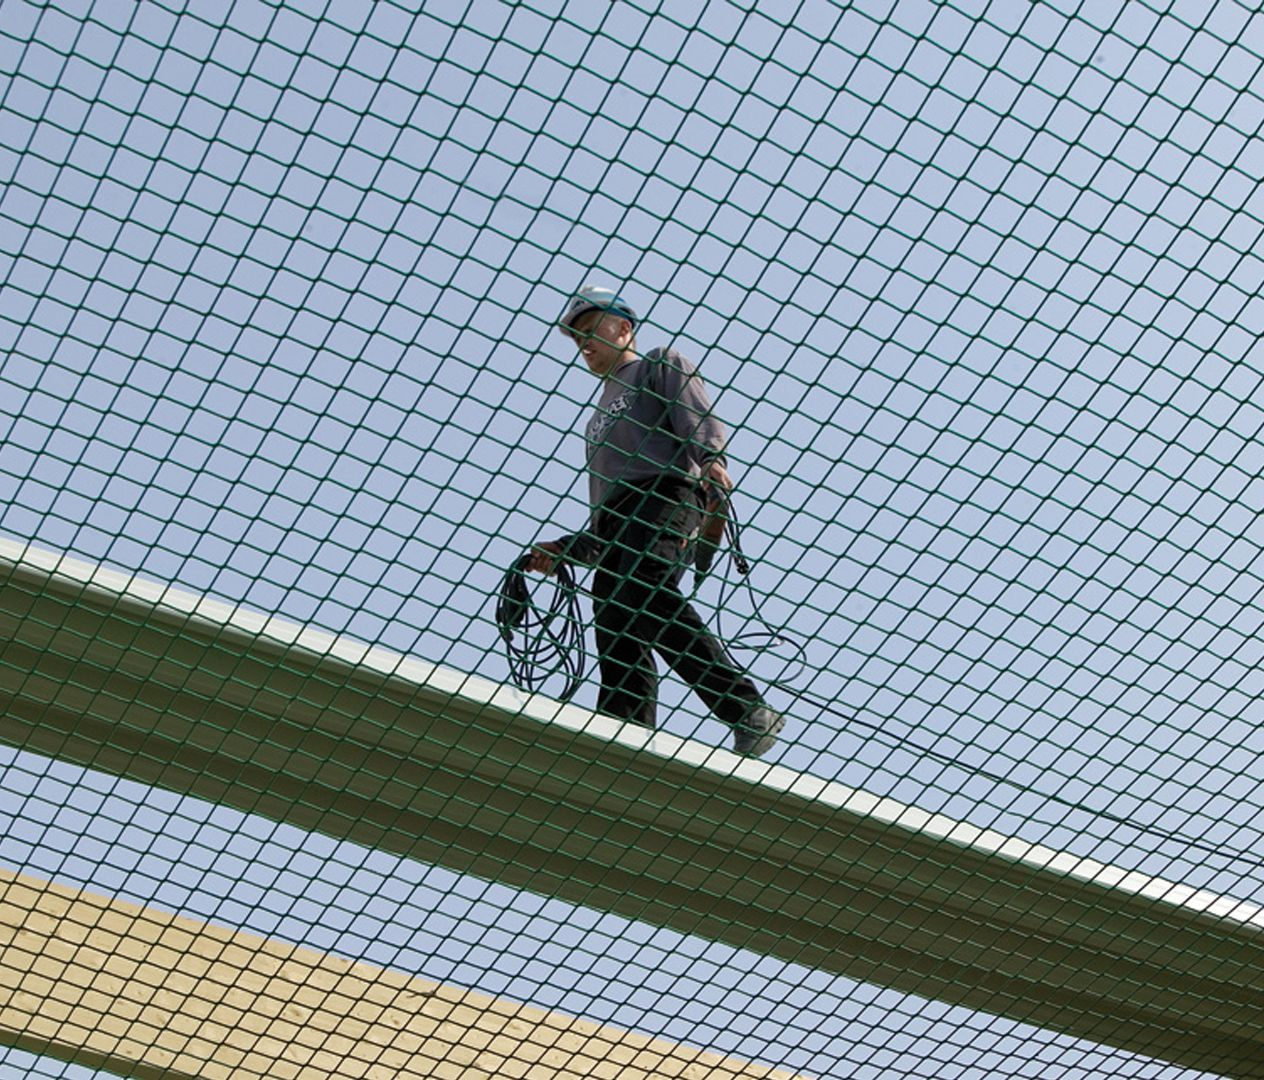 Protective nets